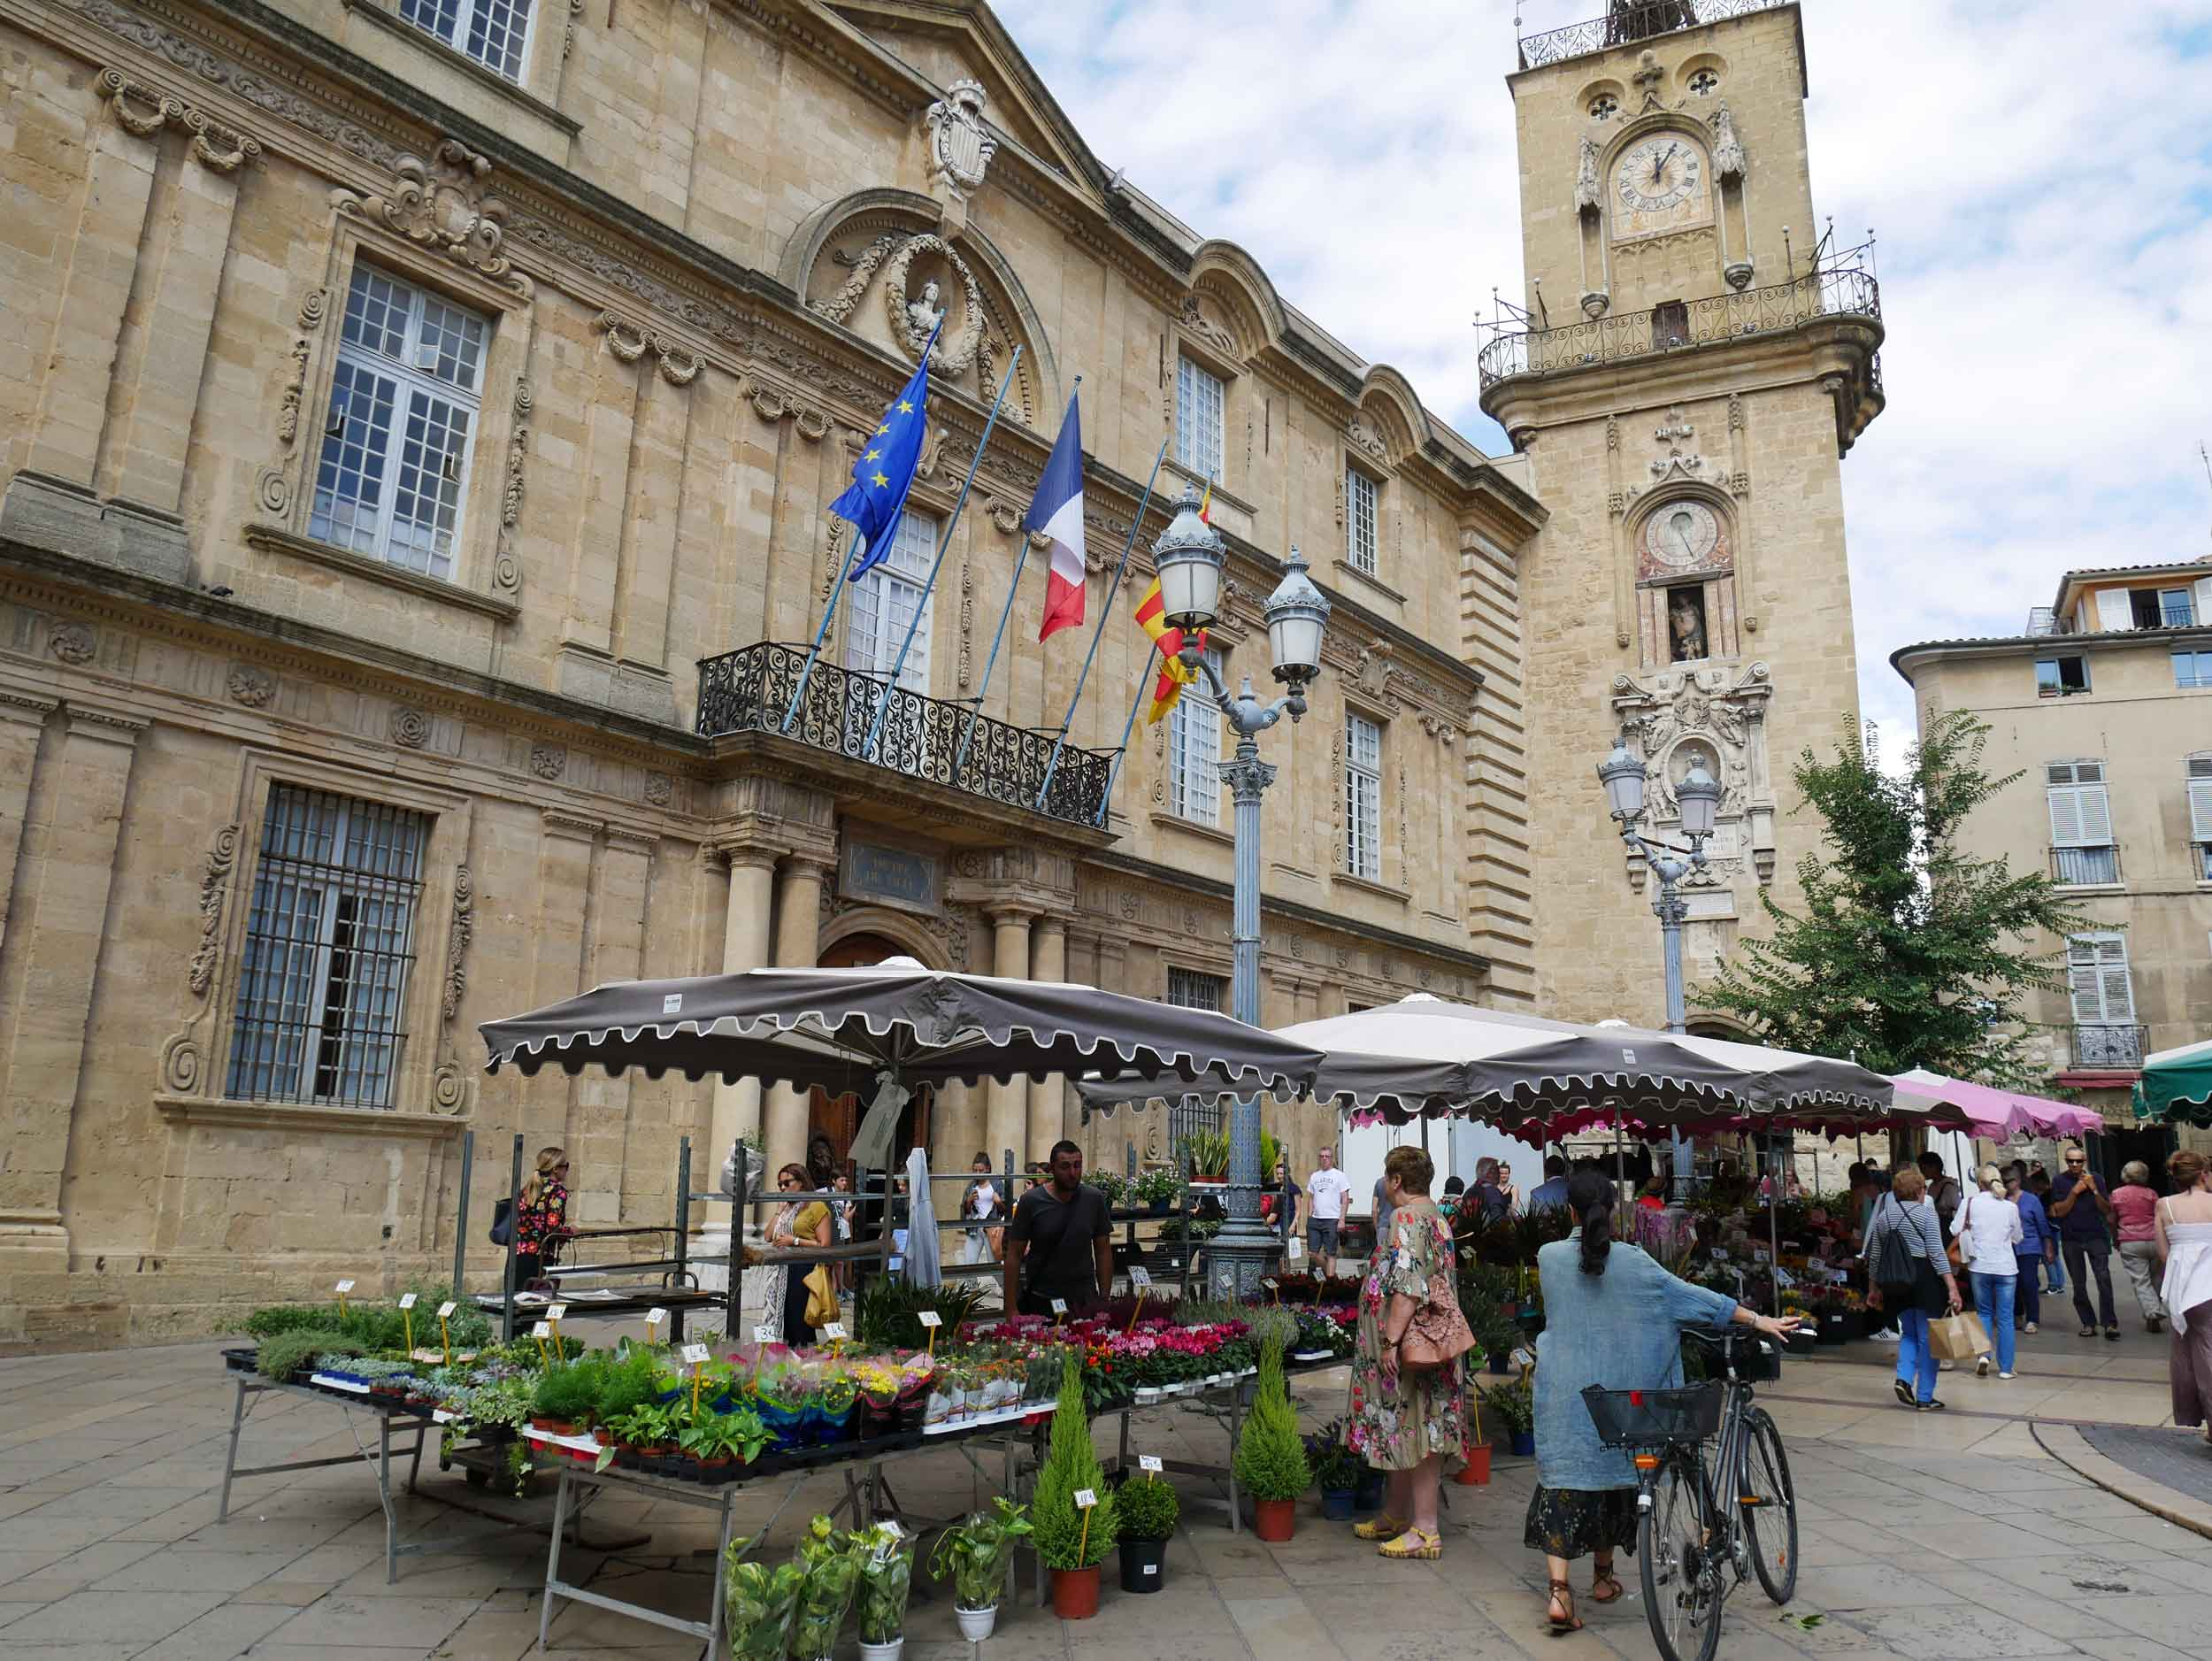 A daily flower market can be found in Aix's l'Hôtel de Ville, with the exception of the first Sunday of each month, when the square is given over to antiquarian and second-hand books – how dreamy!